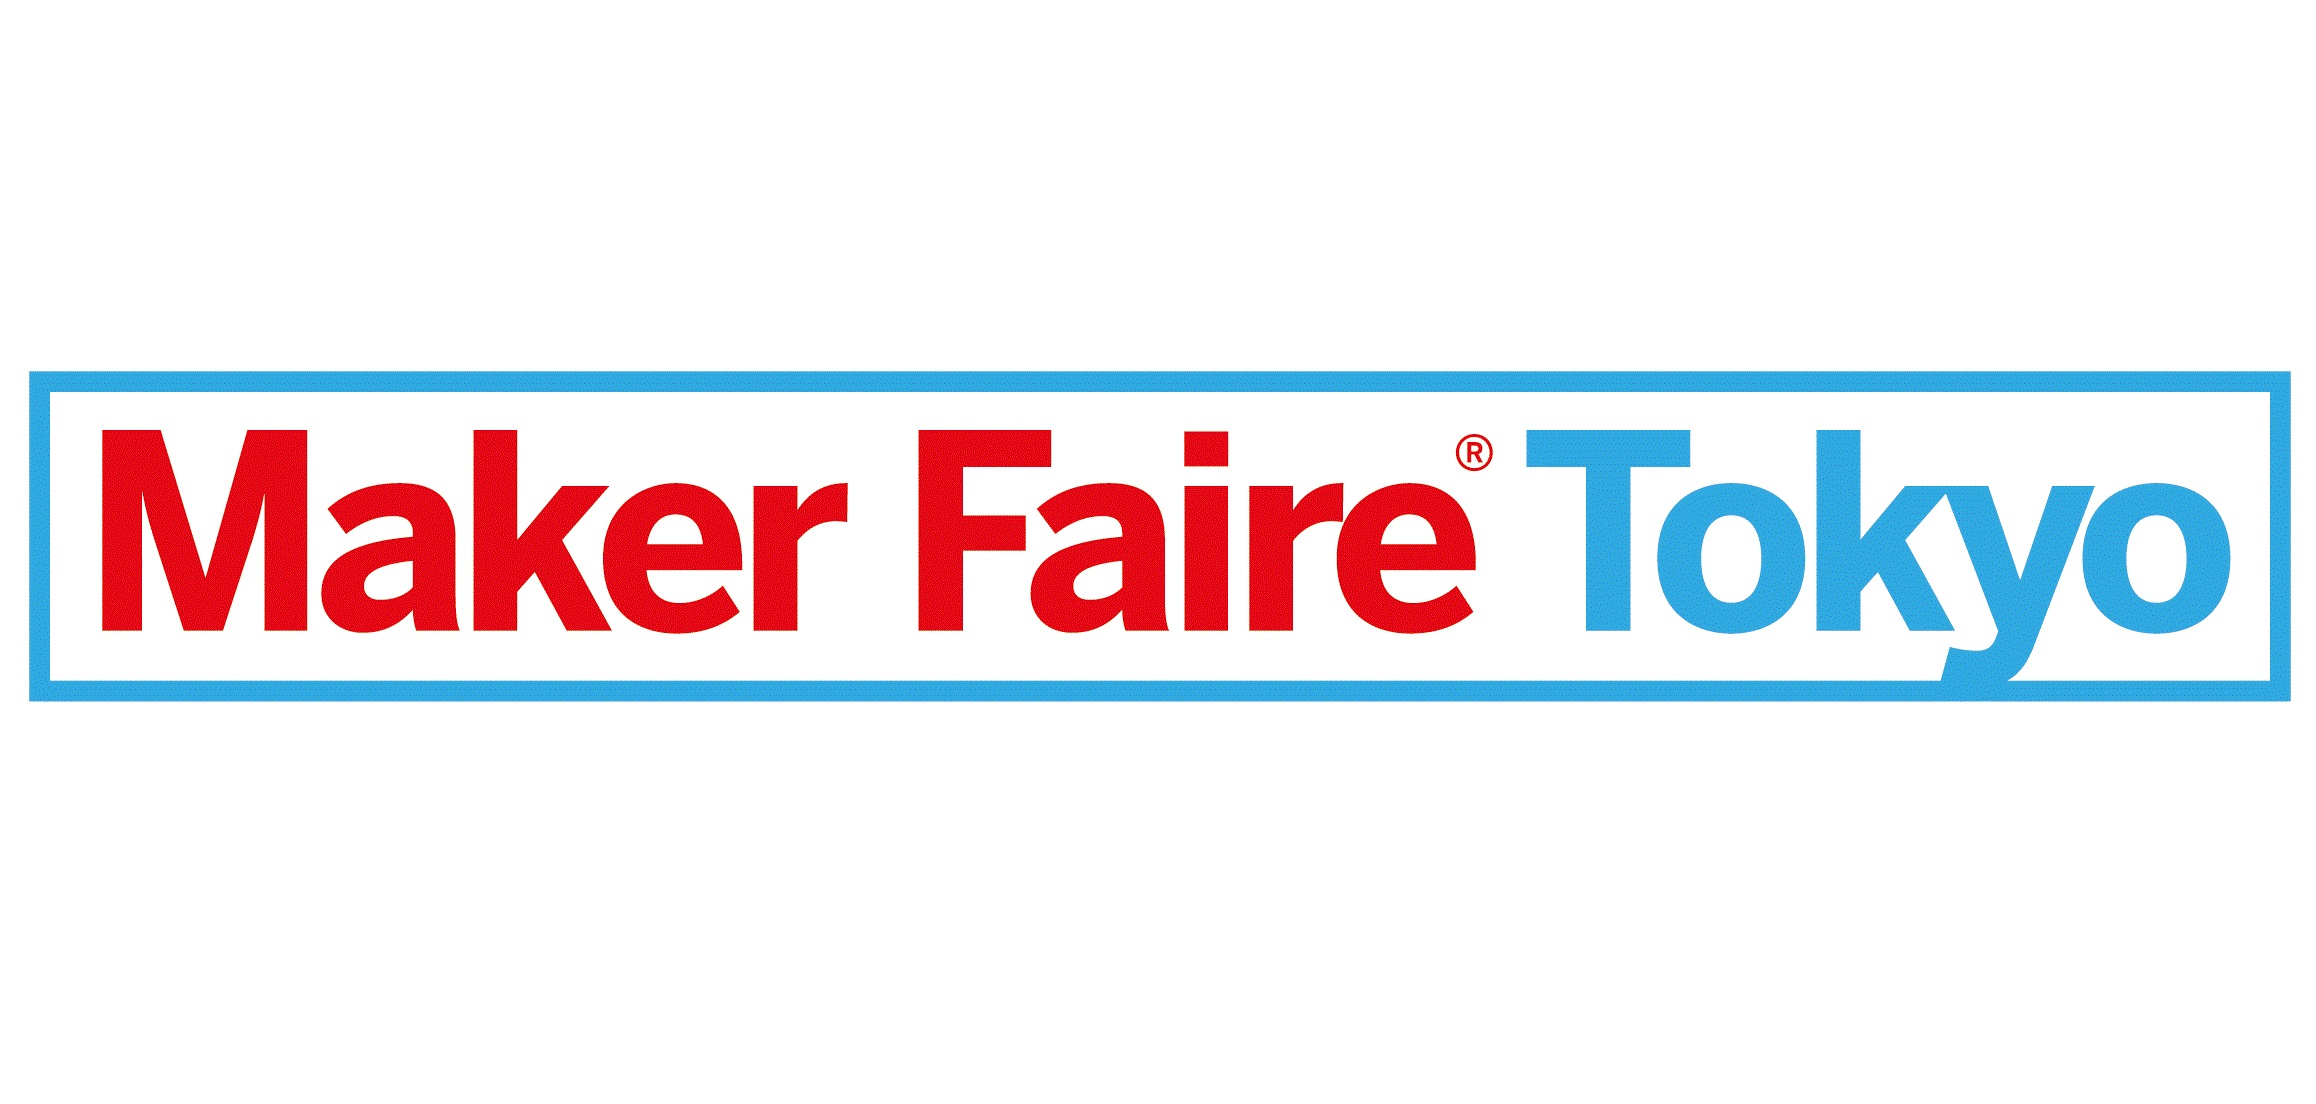 Maker Faire Tokyo 2019 で出展していたコミュニティやサービスのリンク集